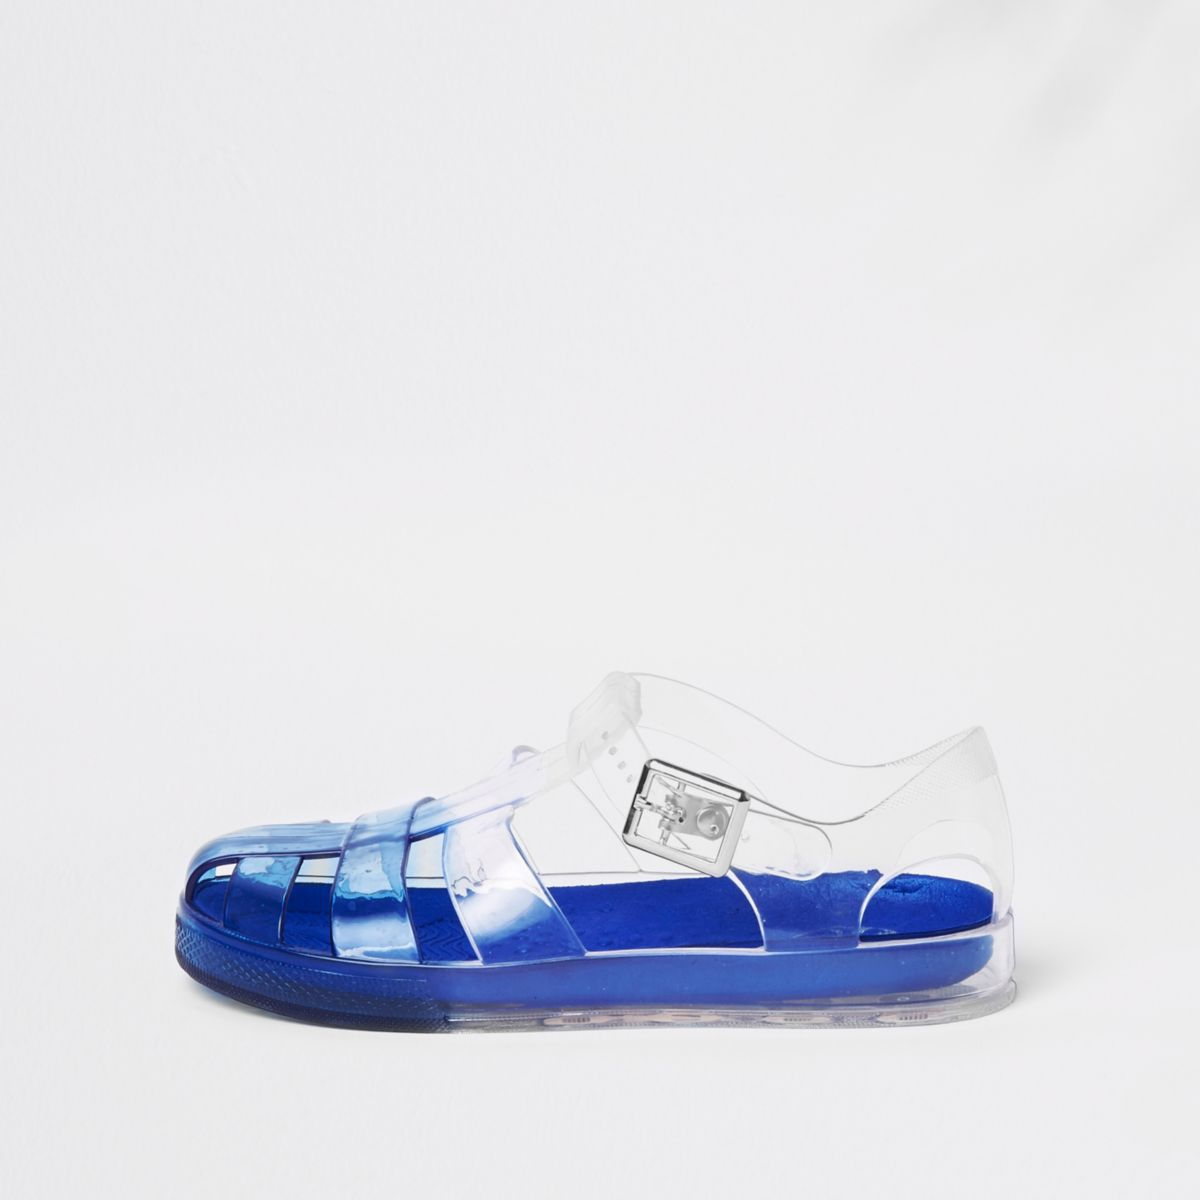 Boys blue two tone jelly sandals